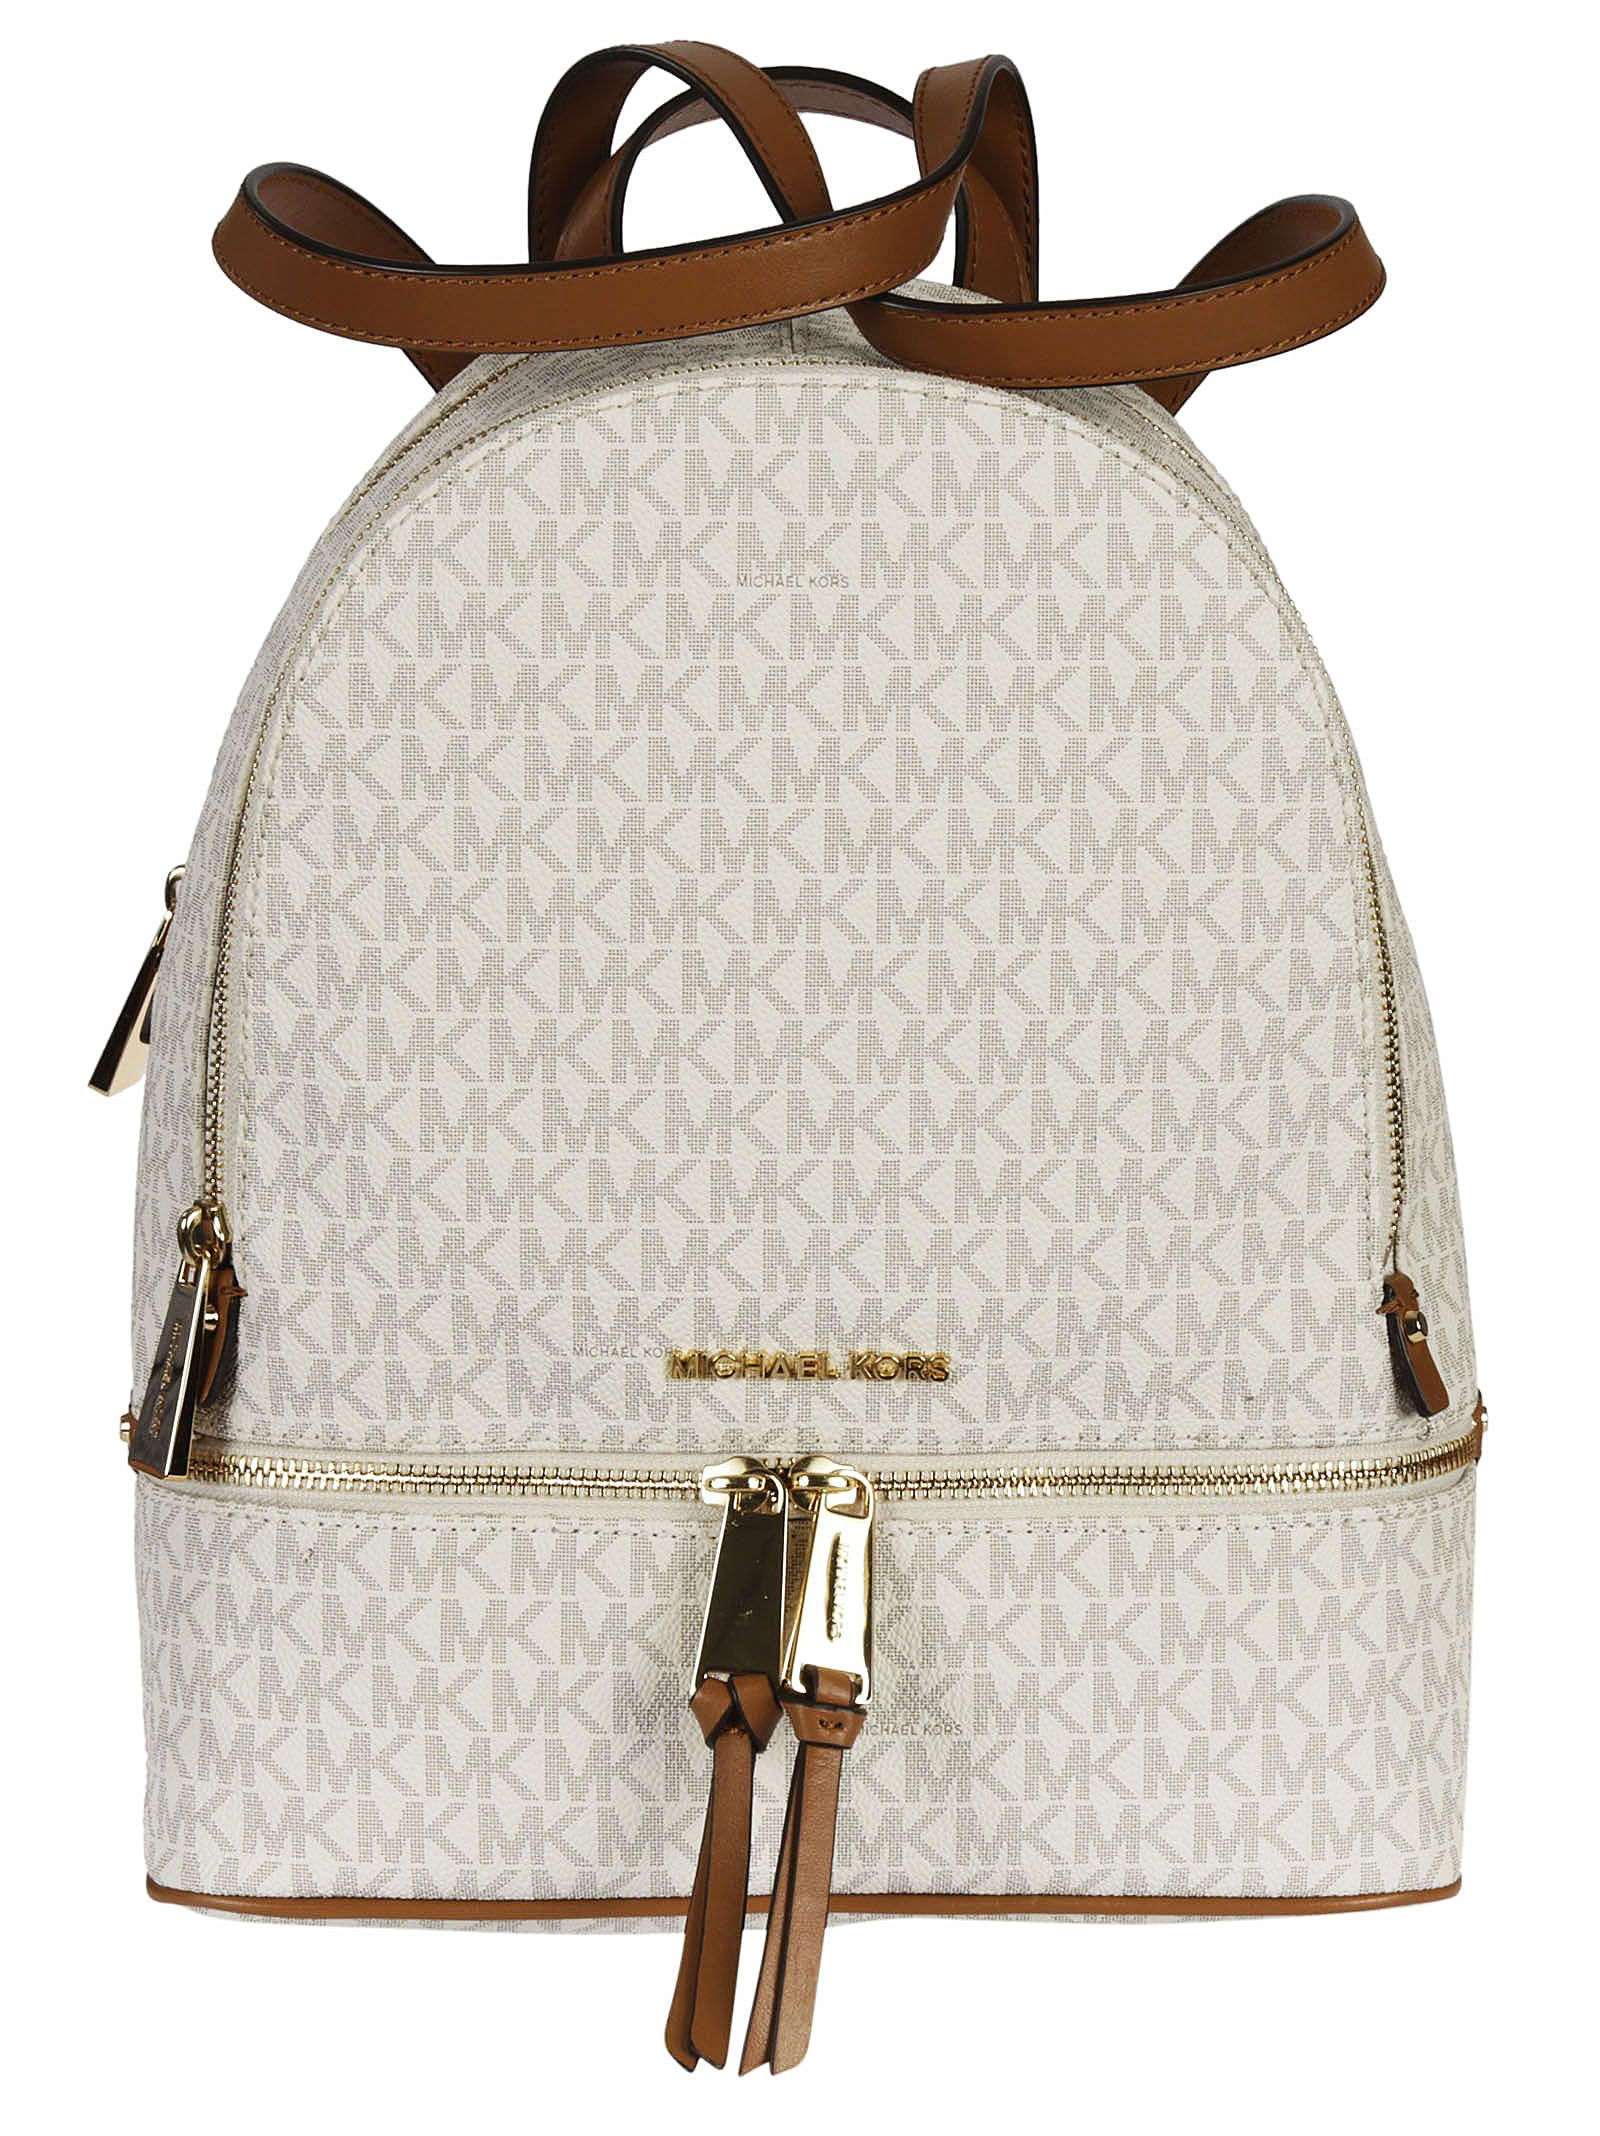 Michael Kors Rhea Backpack